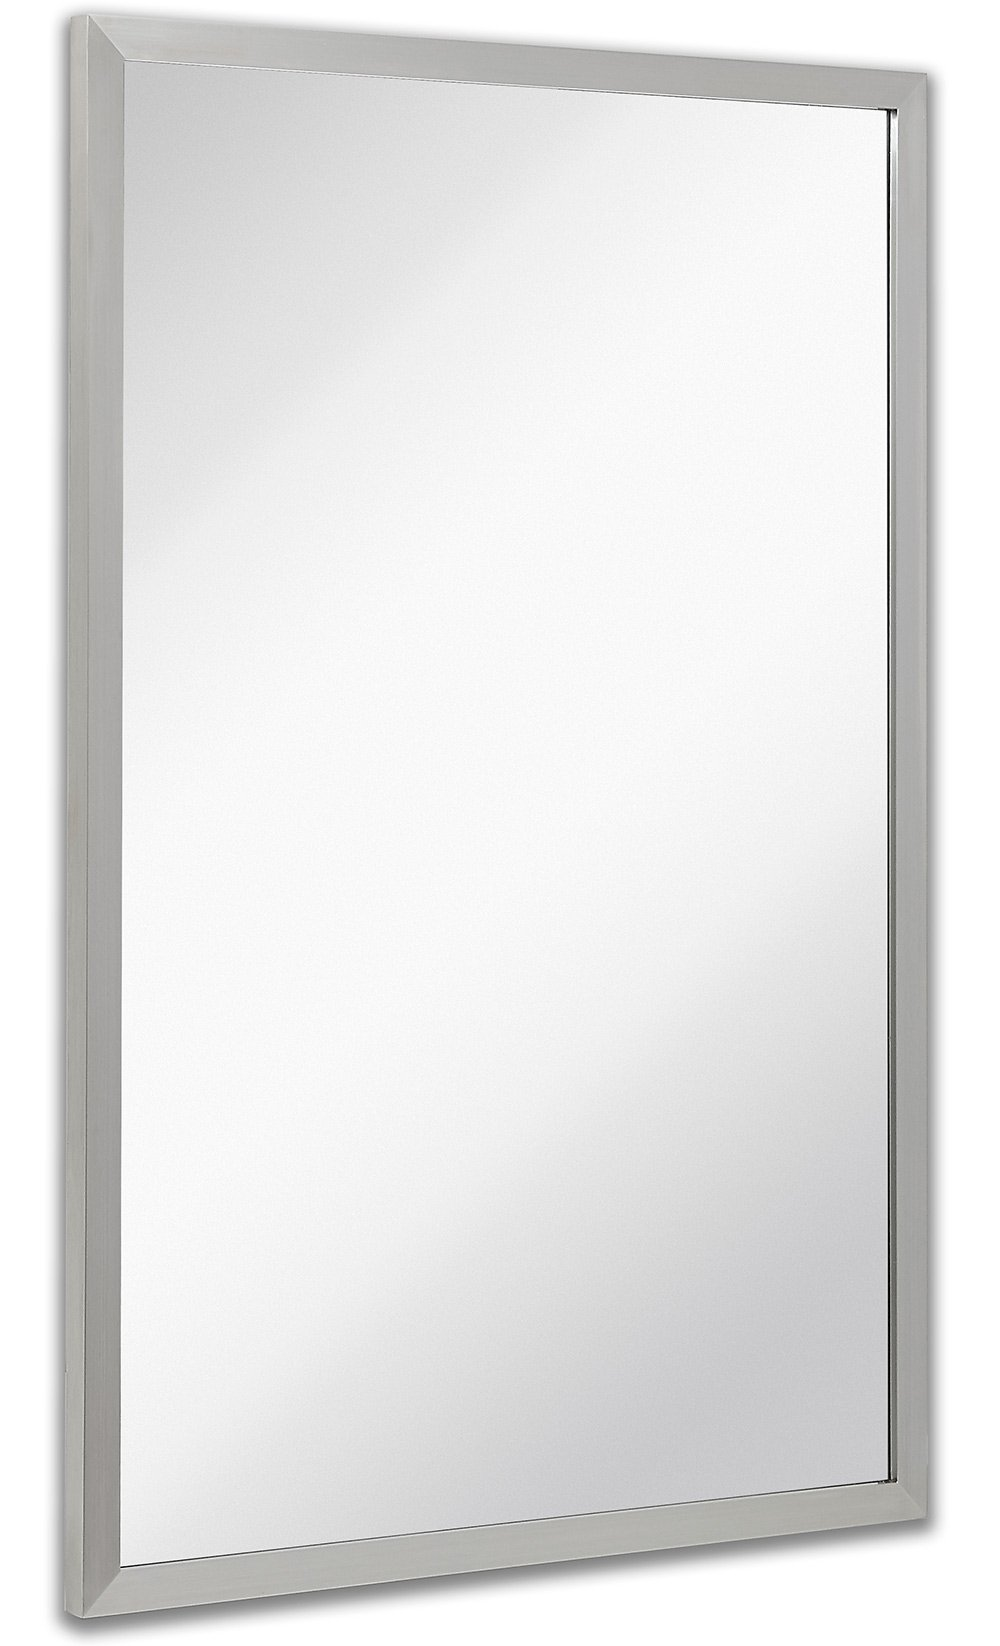 Commercial Restroom Rectangular Wall Mirror | Contemporary Industrial Strength | Brushed Metal Silver Rectangle Mirrored Glass | Vanity, Bedroom or Restroom Horizontal & Vertical (24'' x 36'')